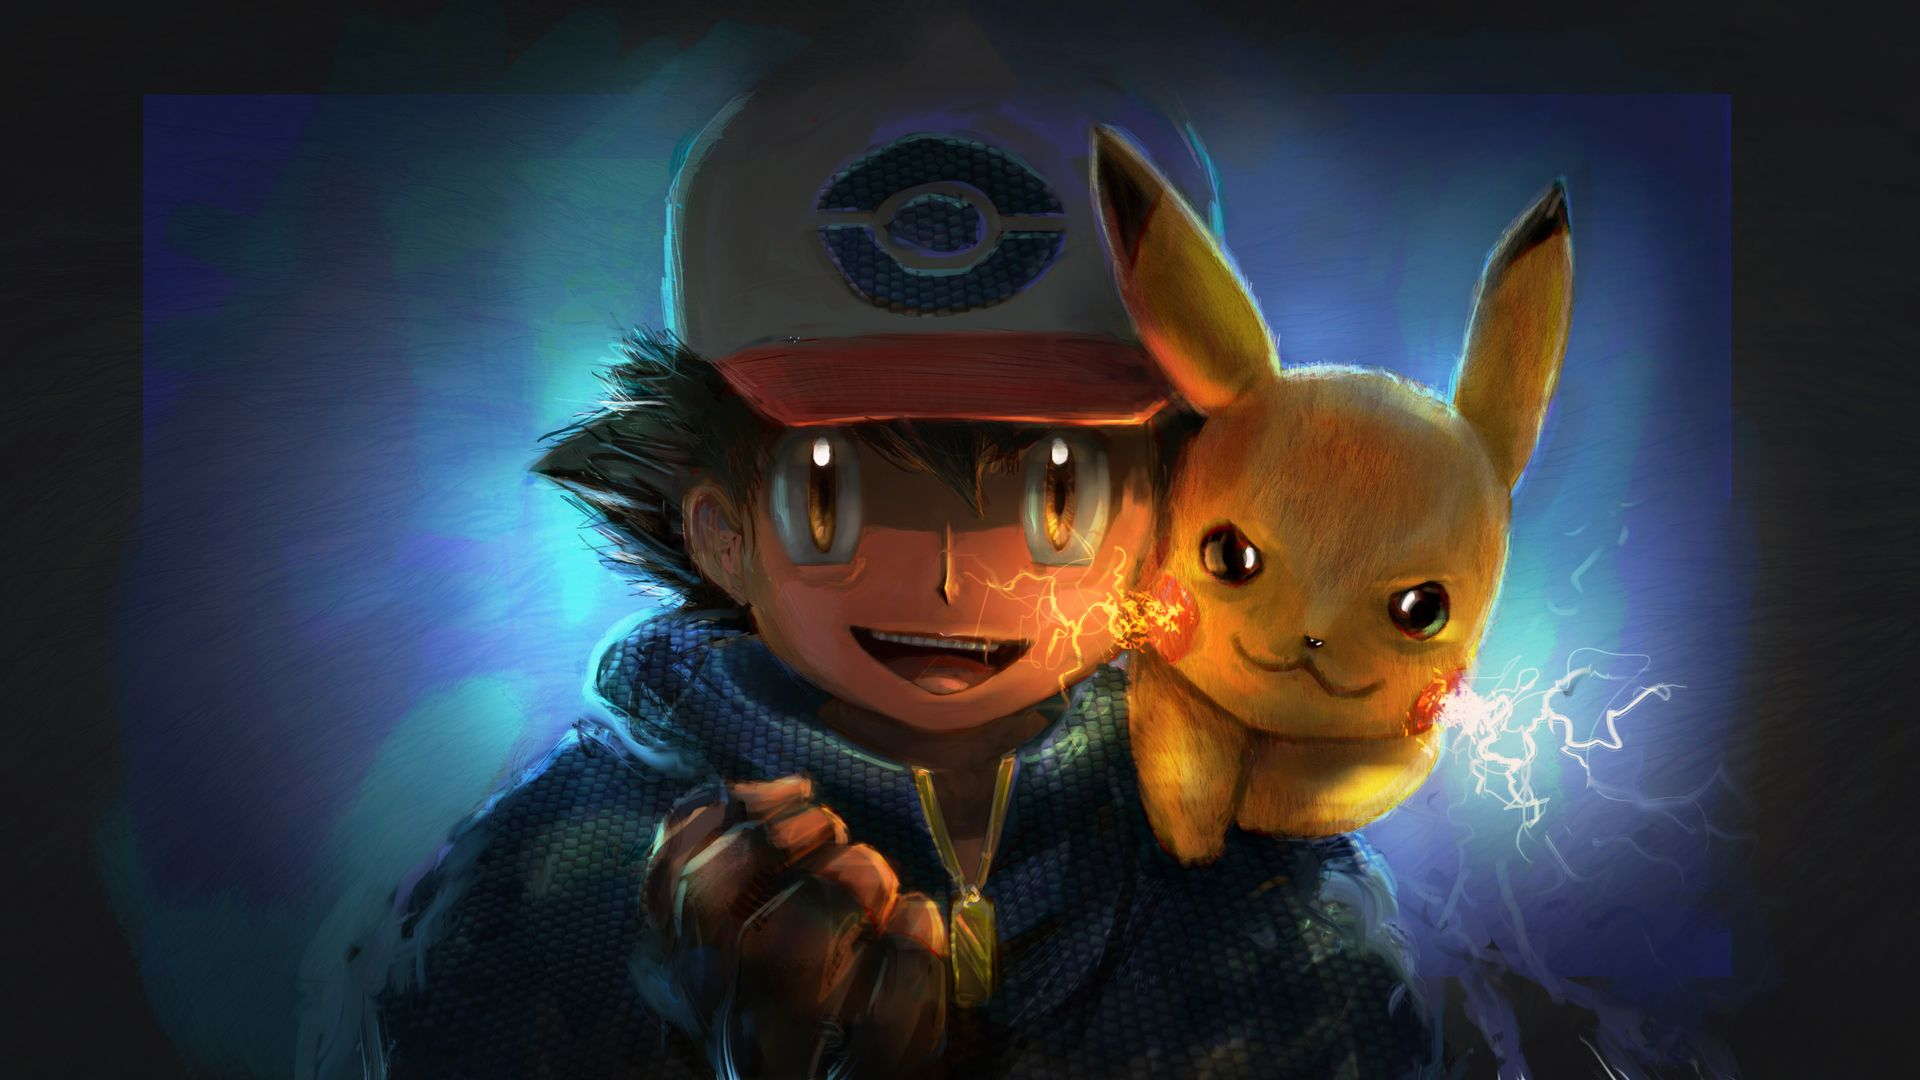 Ash And Pikachu Hd Wallpapers Top Free Ash And Pikachu Hd Backgrounds Wallpaperaccess